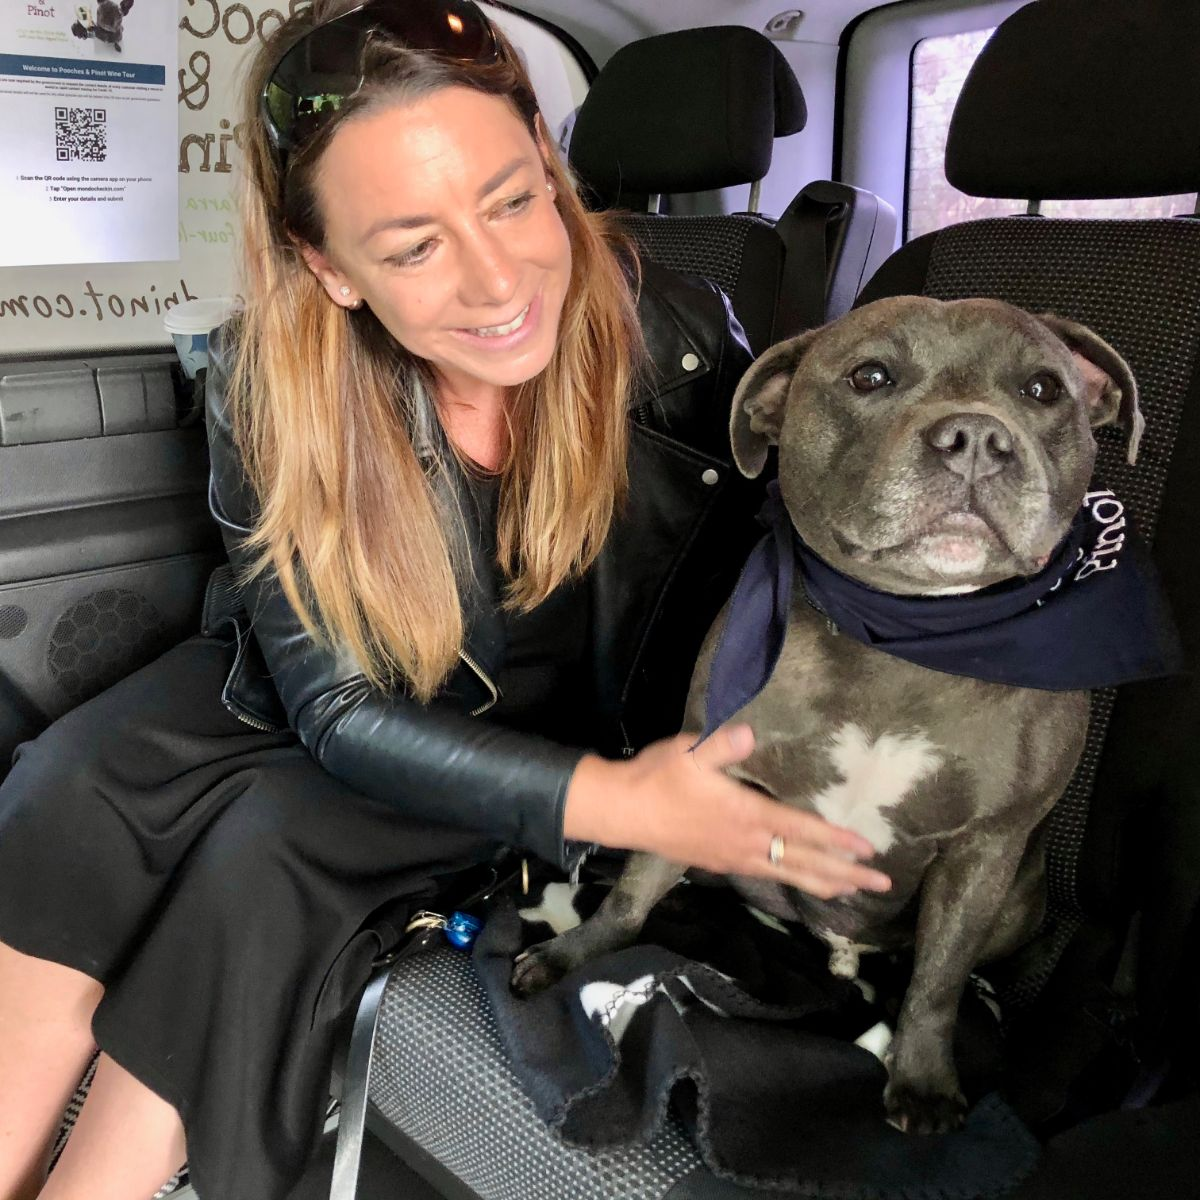 staffy in Pooches & Pinot wine tour van